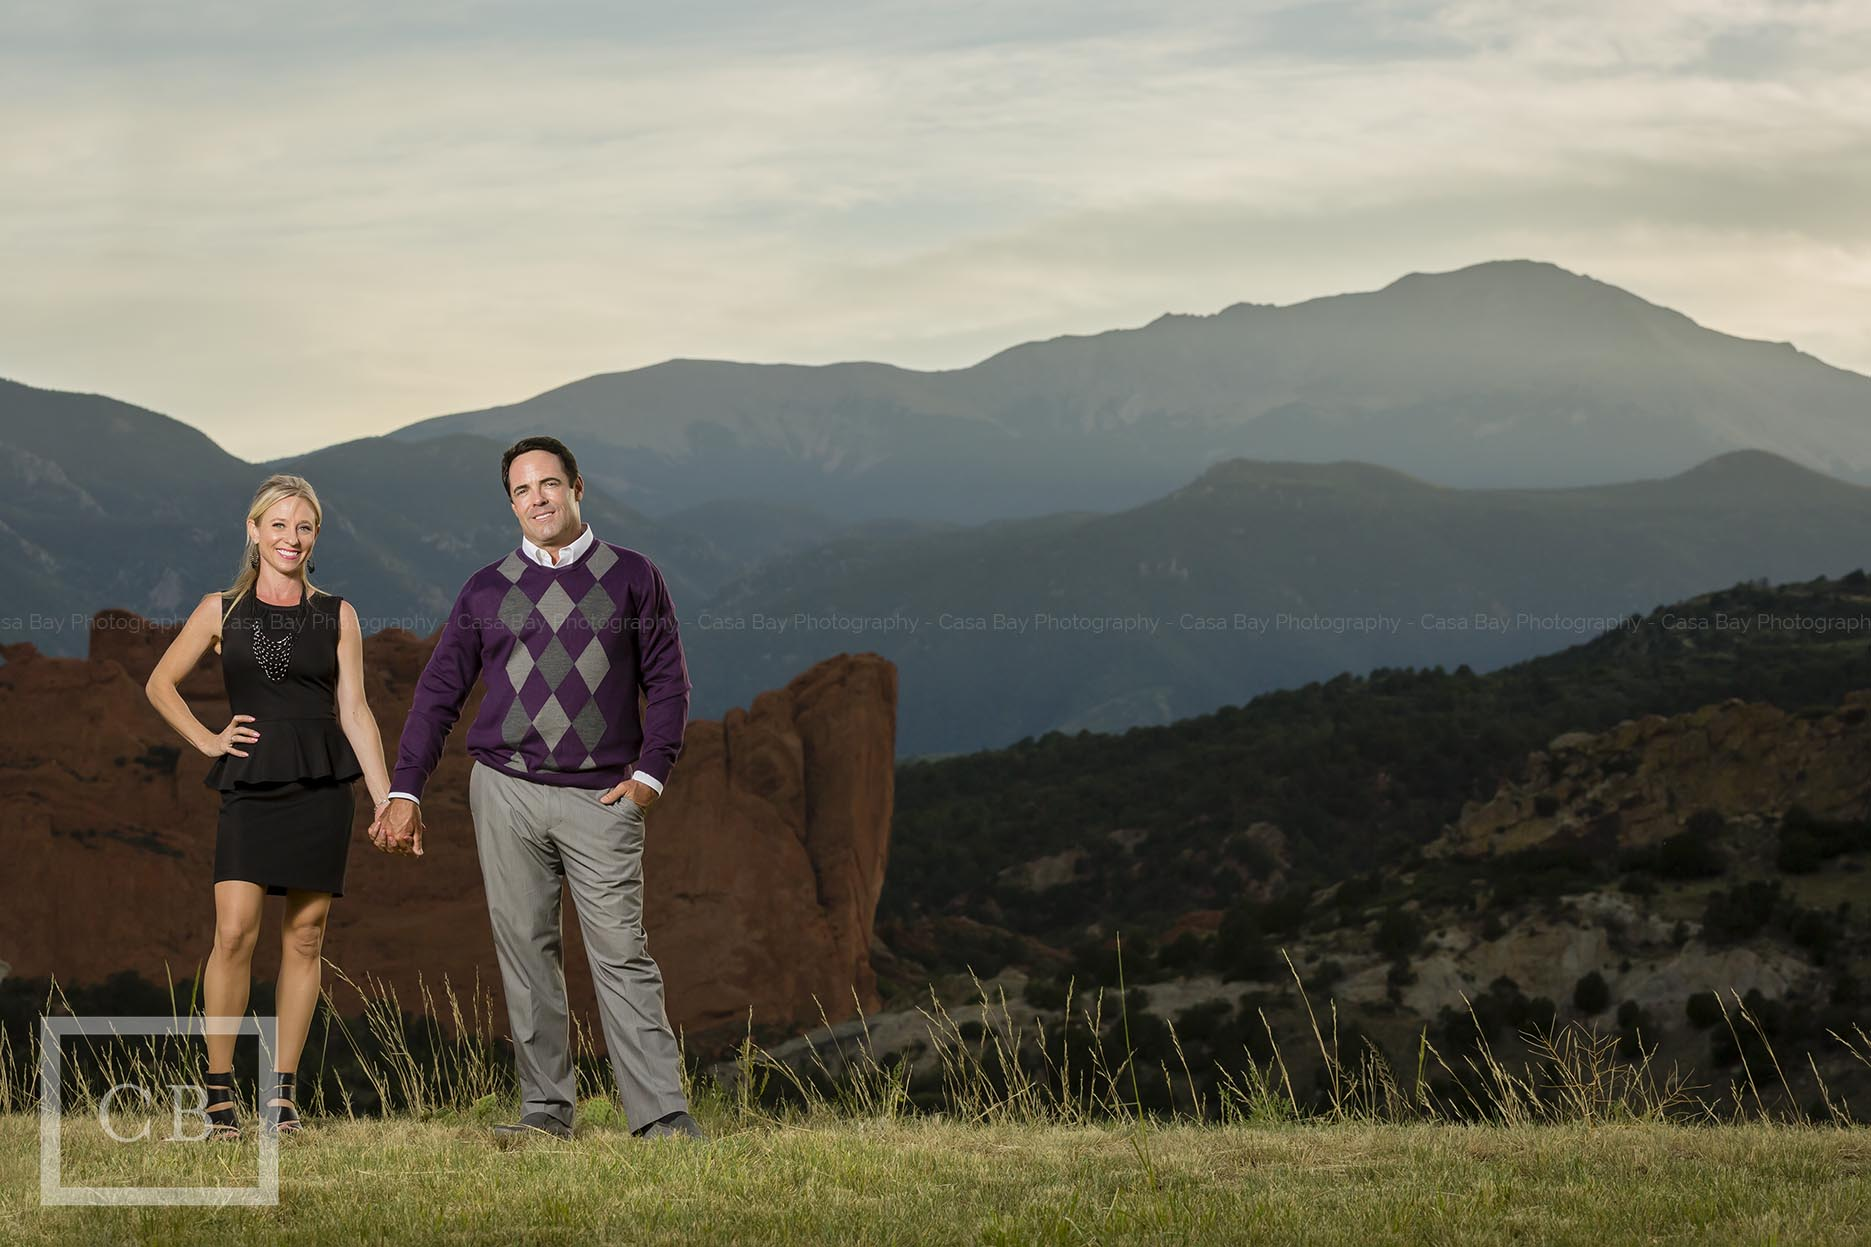 Photography-Family-Session-Photo-Shoot-Garden-Of-The-Gods-Park-Colorado-Springs025.jpg